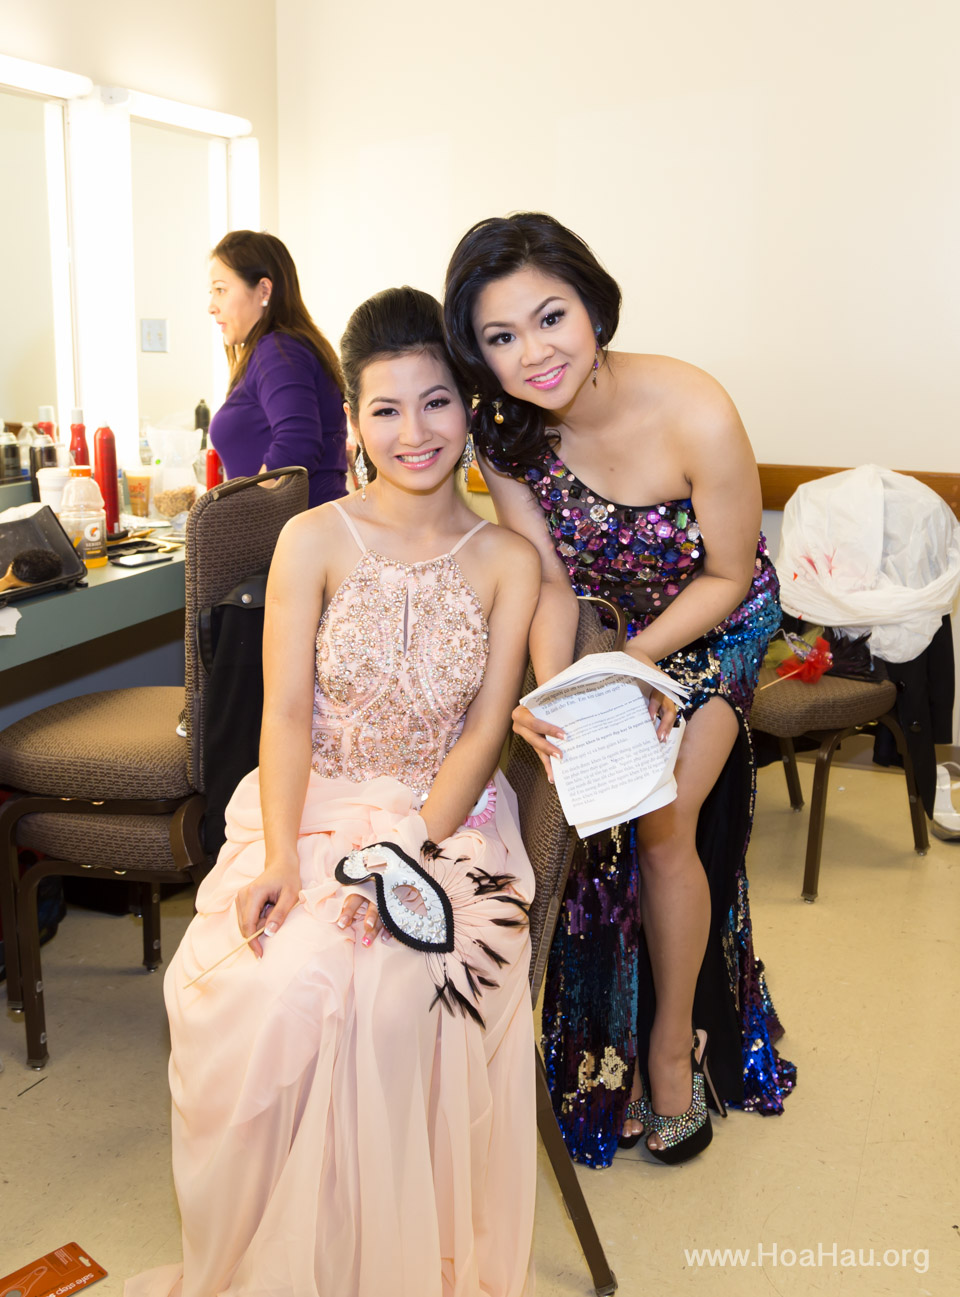 Miss Vietnam of Northern California 2014 - Hoa Hau Ao Dai Bac Cali 2014 - Behind the Scenes - Image 209